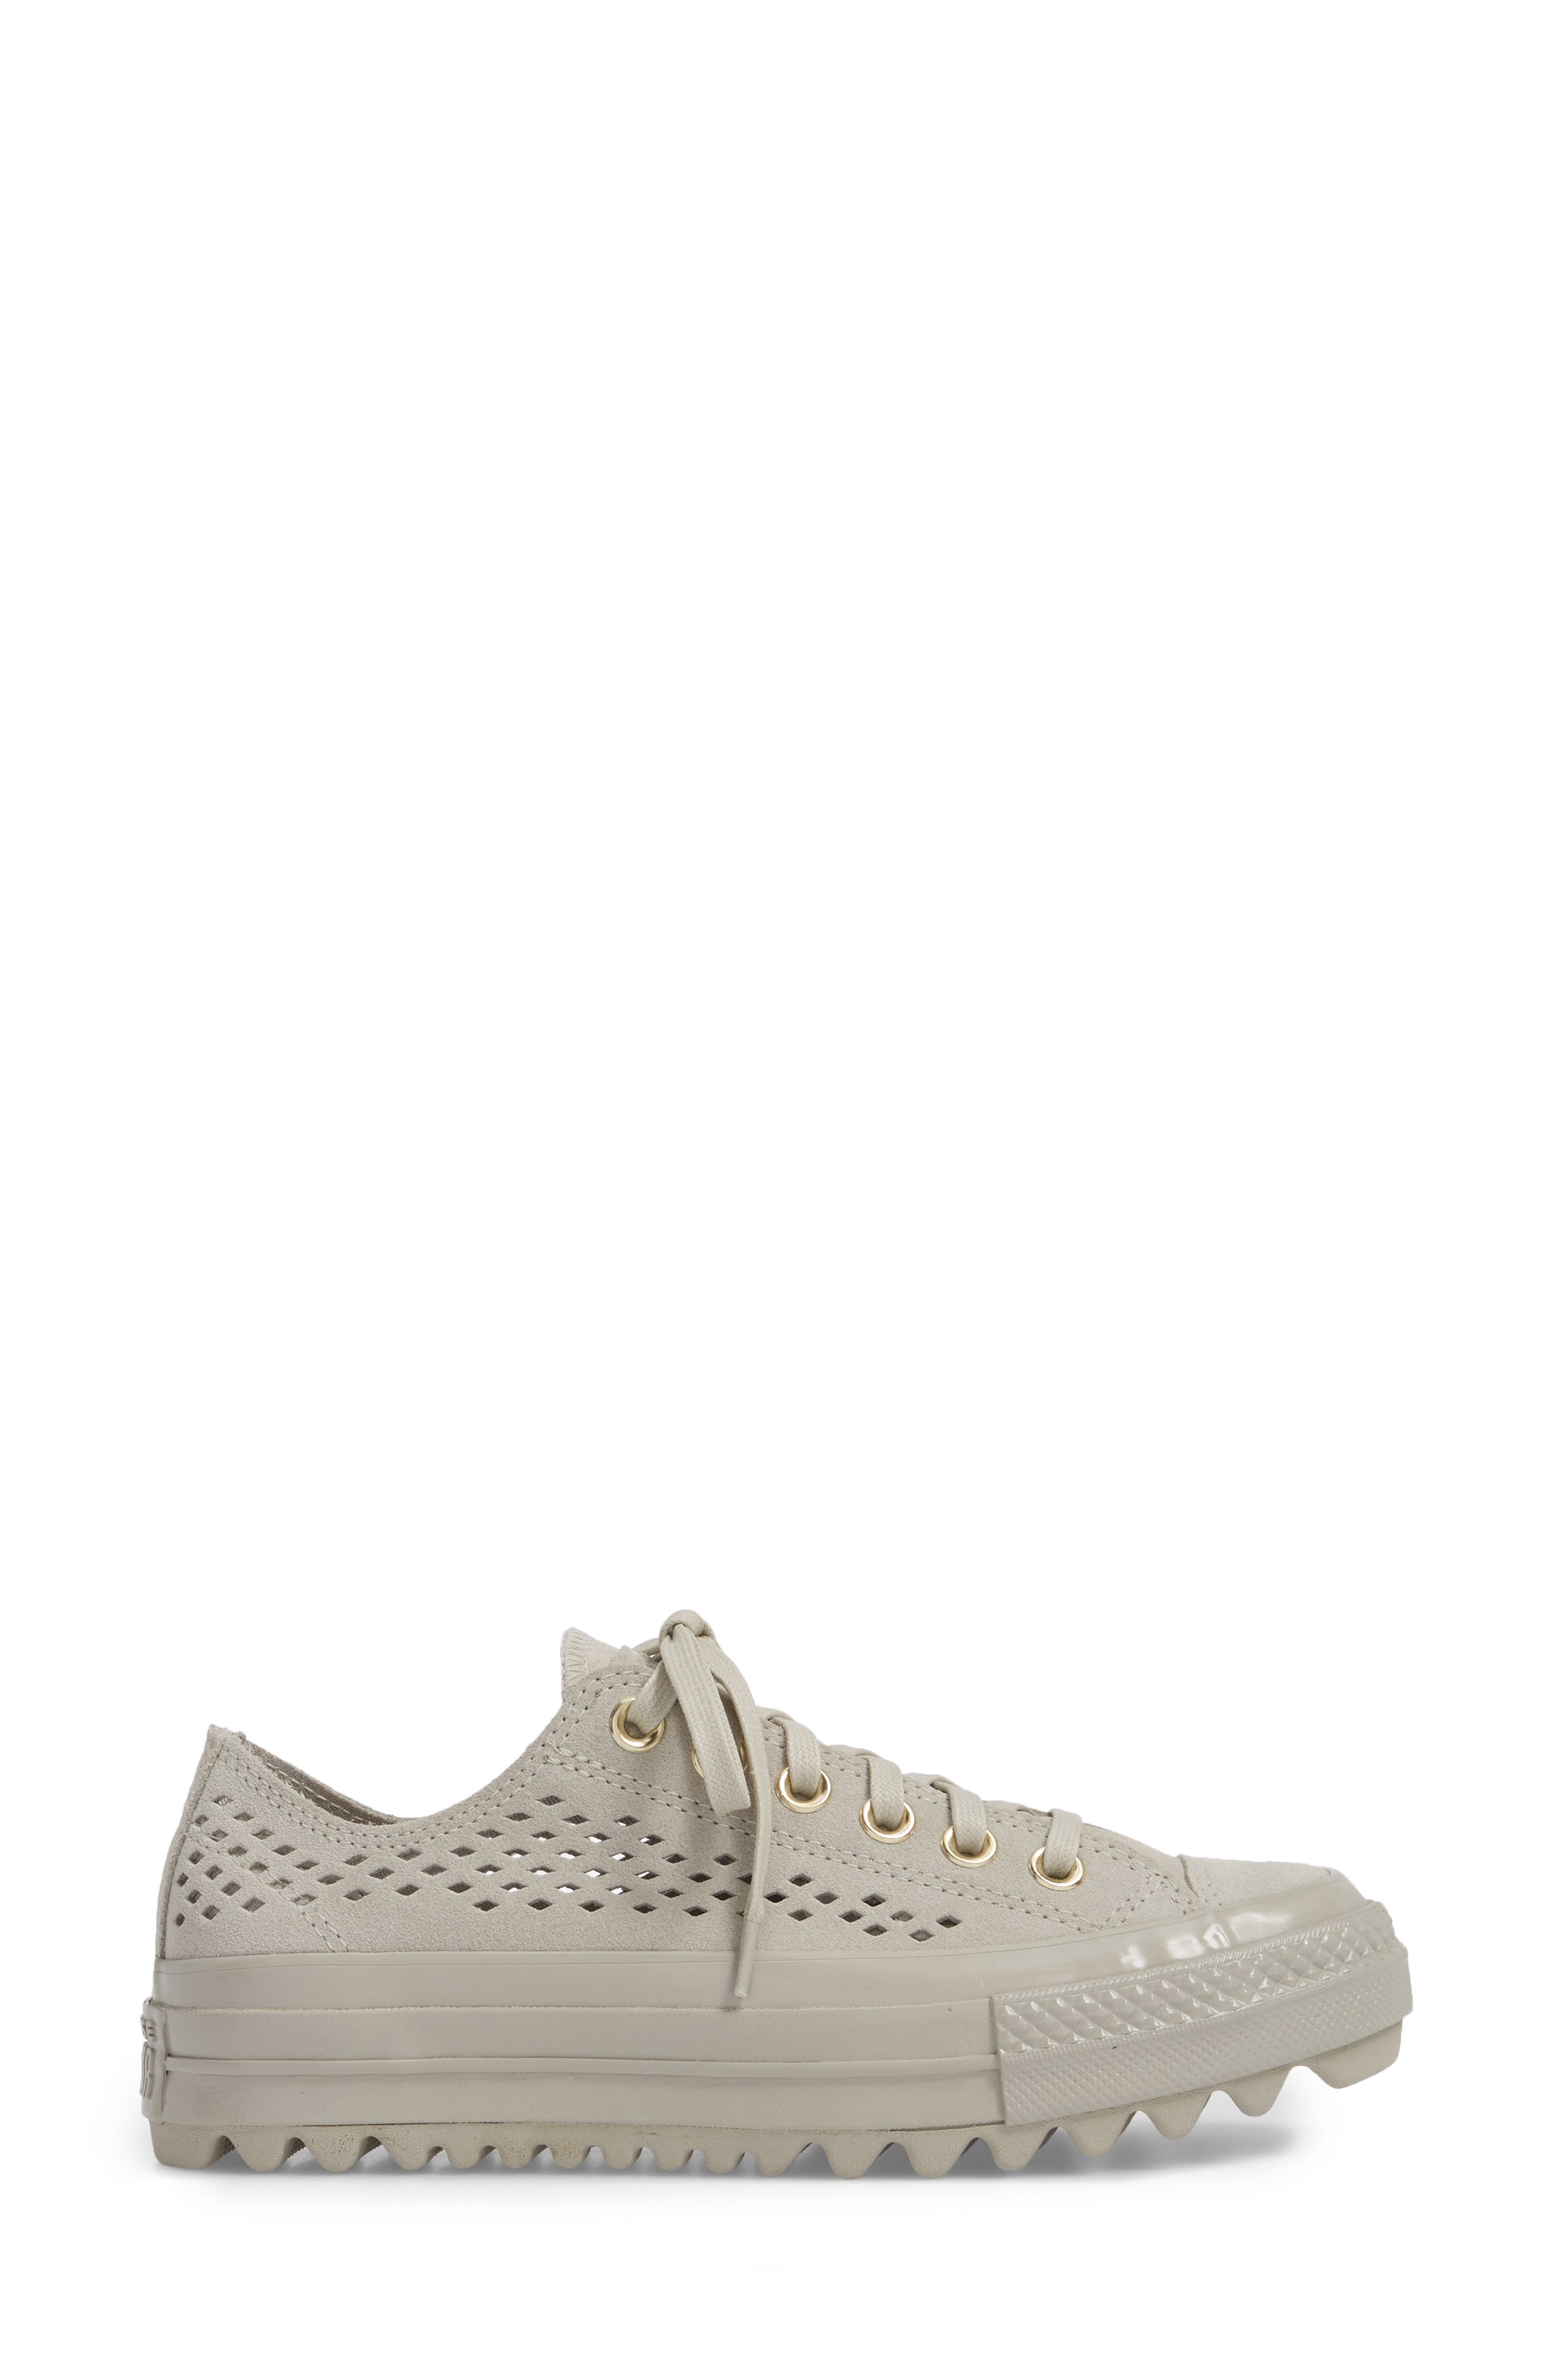 Chuck Taylor<sup>®</sup> All Star<sup>®</sup> Lift Ripple Sneaker,                             Alternate thumbnail 3, color,                             081